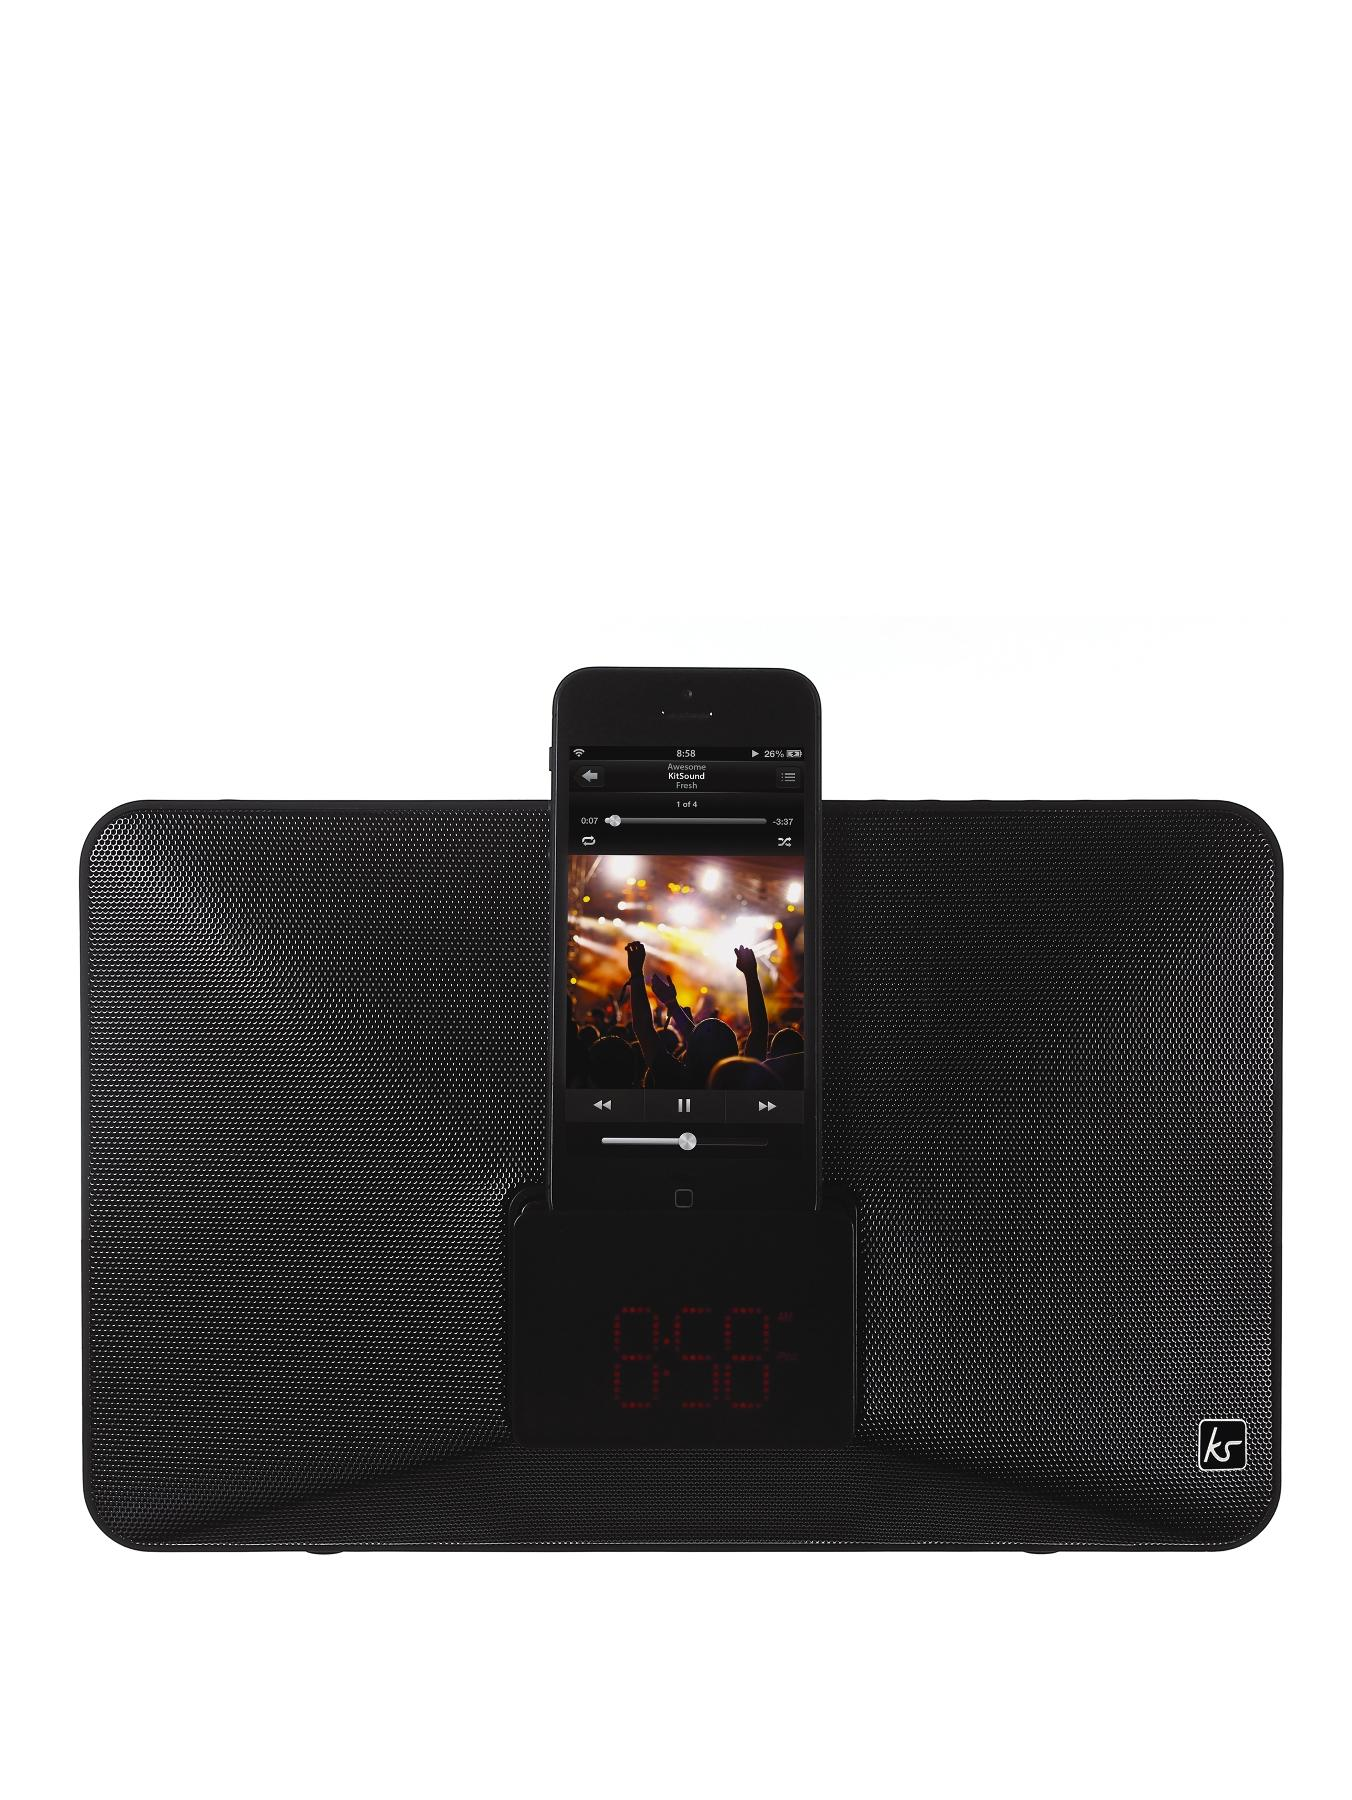 Fresh 8 Pin Lightning Clock Radio Speaker Docking Station - Black